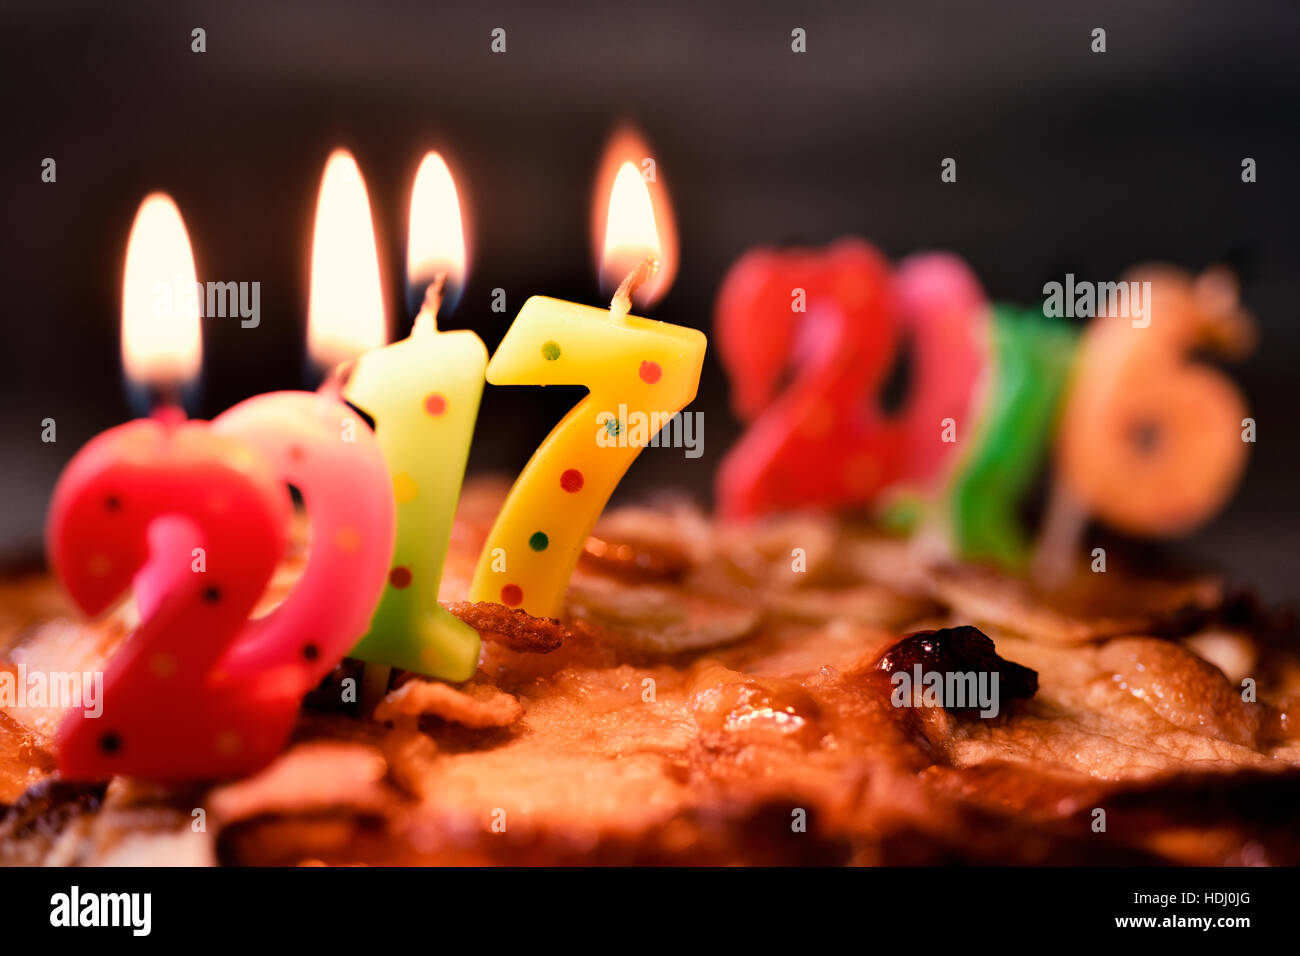 four lit number-shaped candles of different colors forming the number 2017, as the new year, on a cake, and more - Stock Image